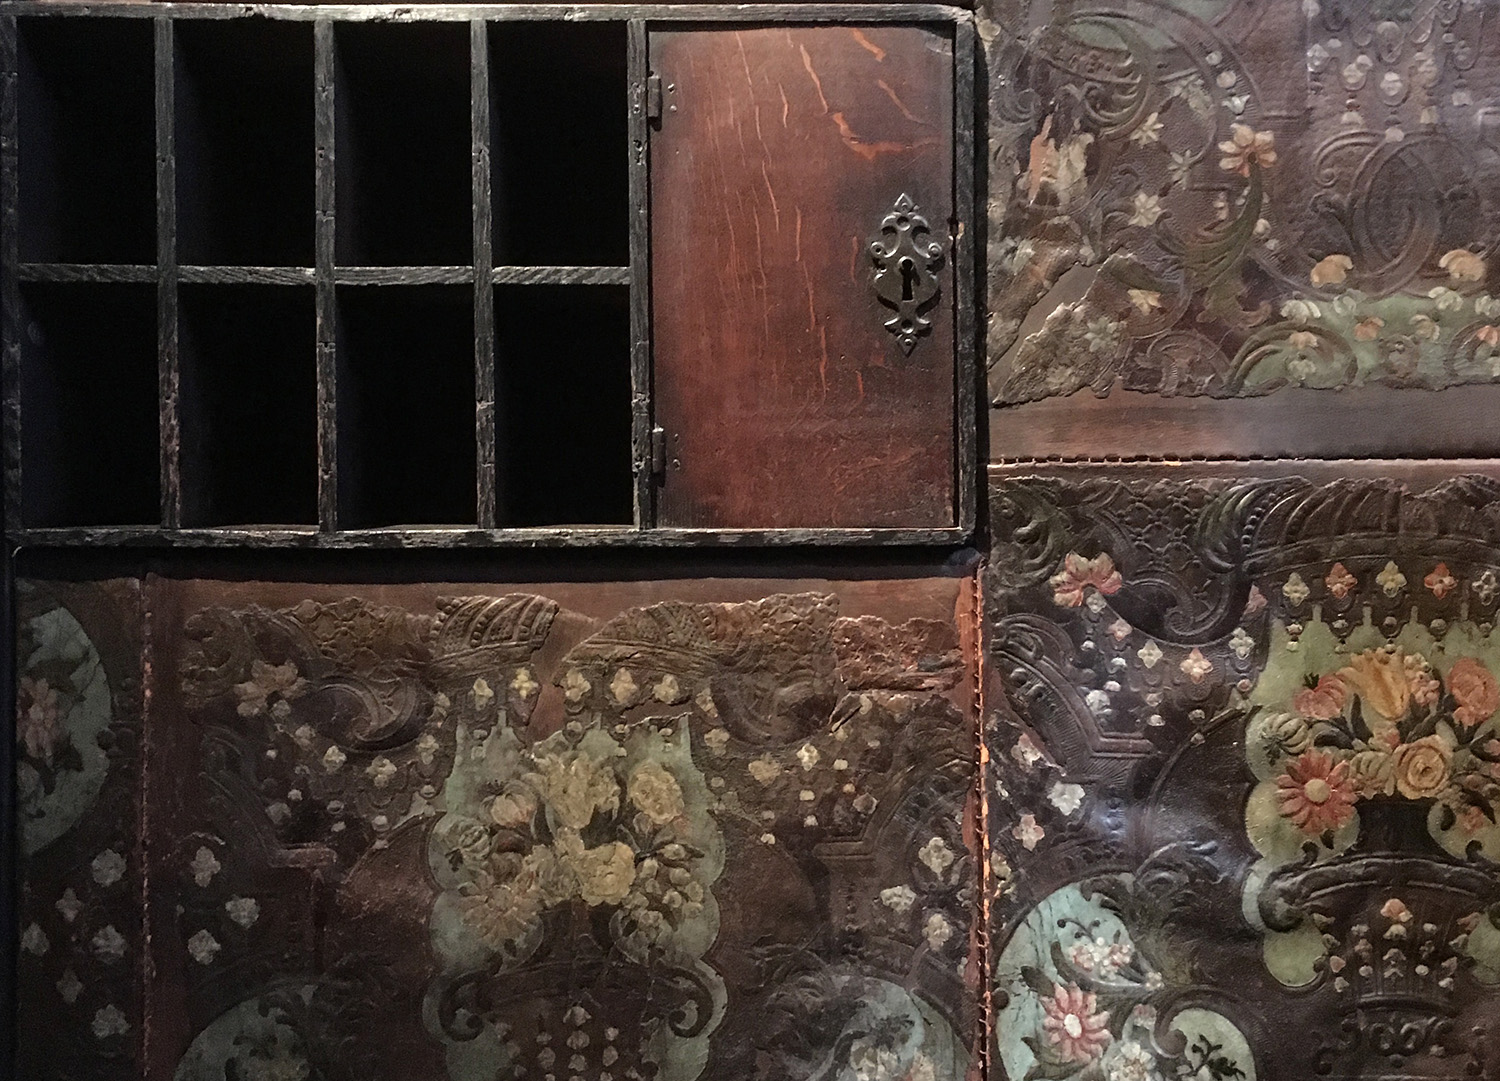 Plantin's small office is decorated with painted and tooled leather.